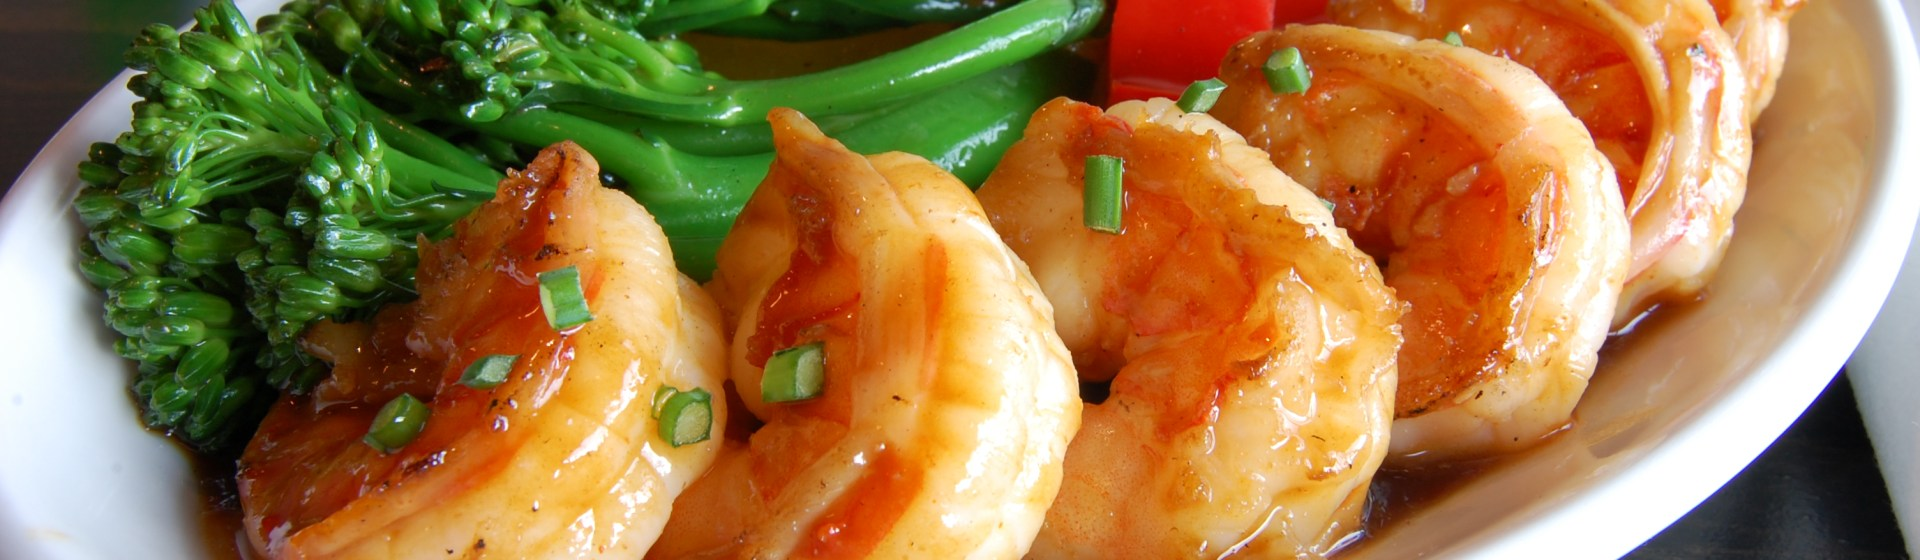 Can American Chinese Food Be Healthy Food Republic